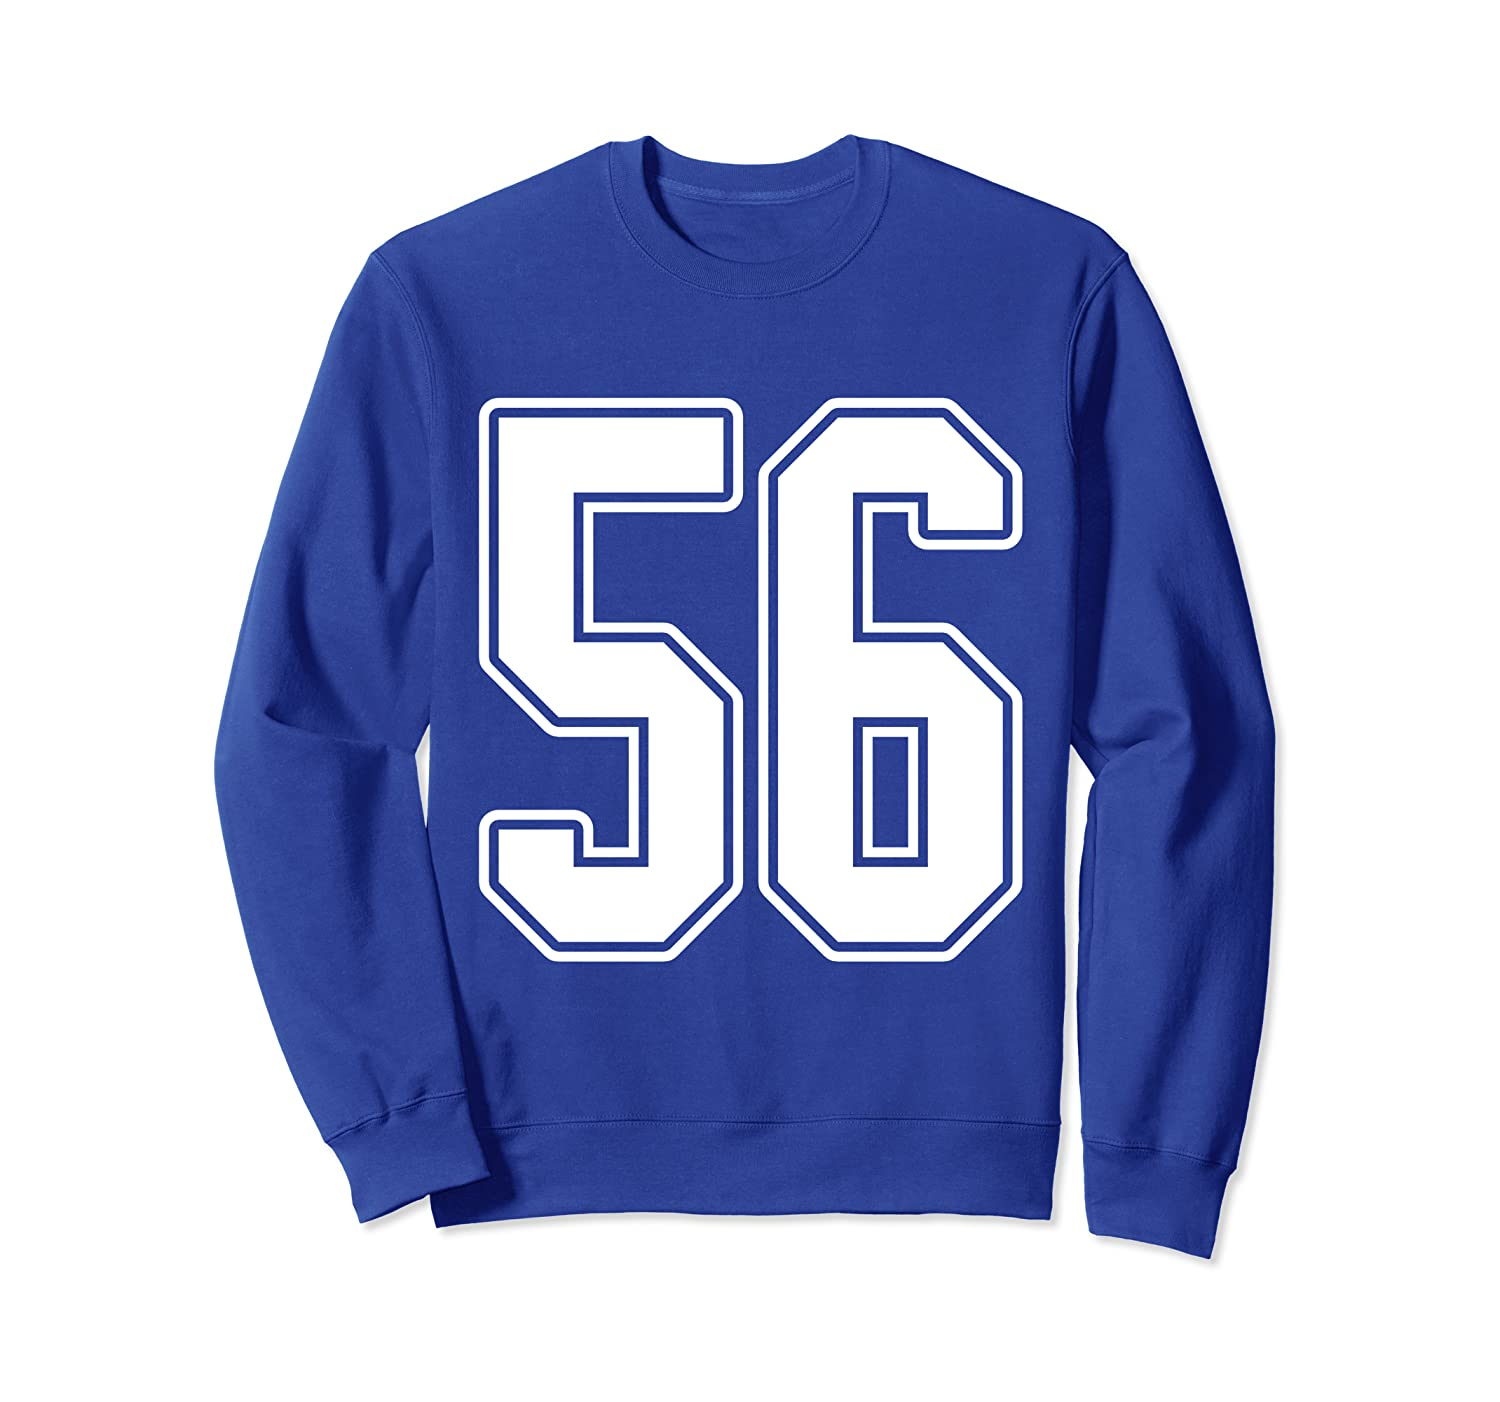 #56 White Outline Number 56 Sports Fan Jersey Style Sweatshirt-TH